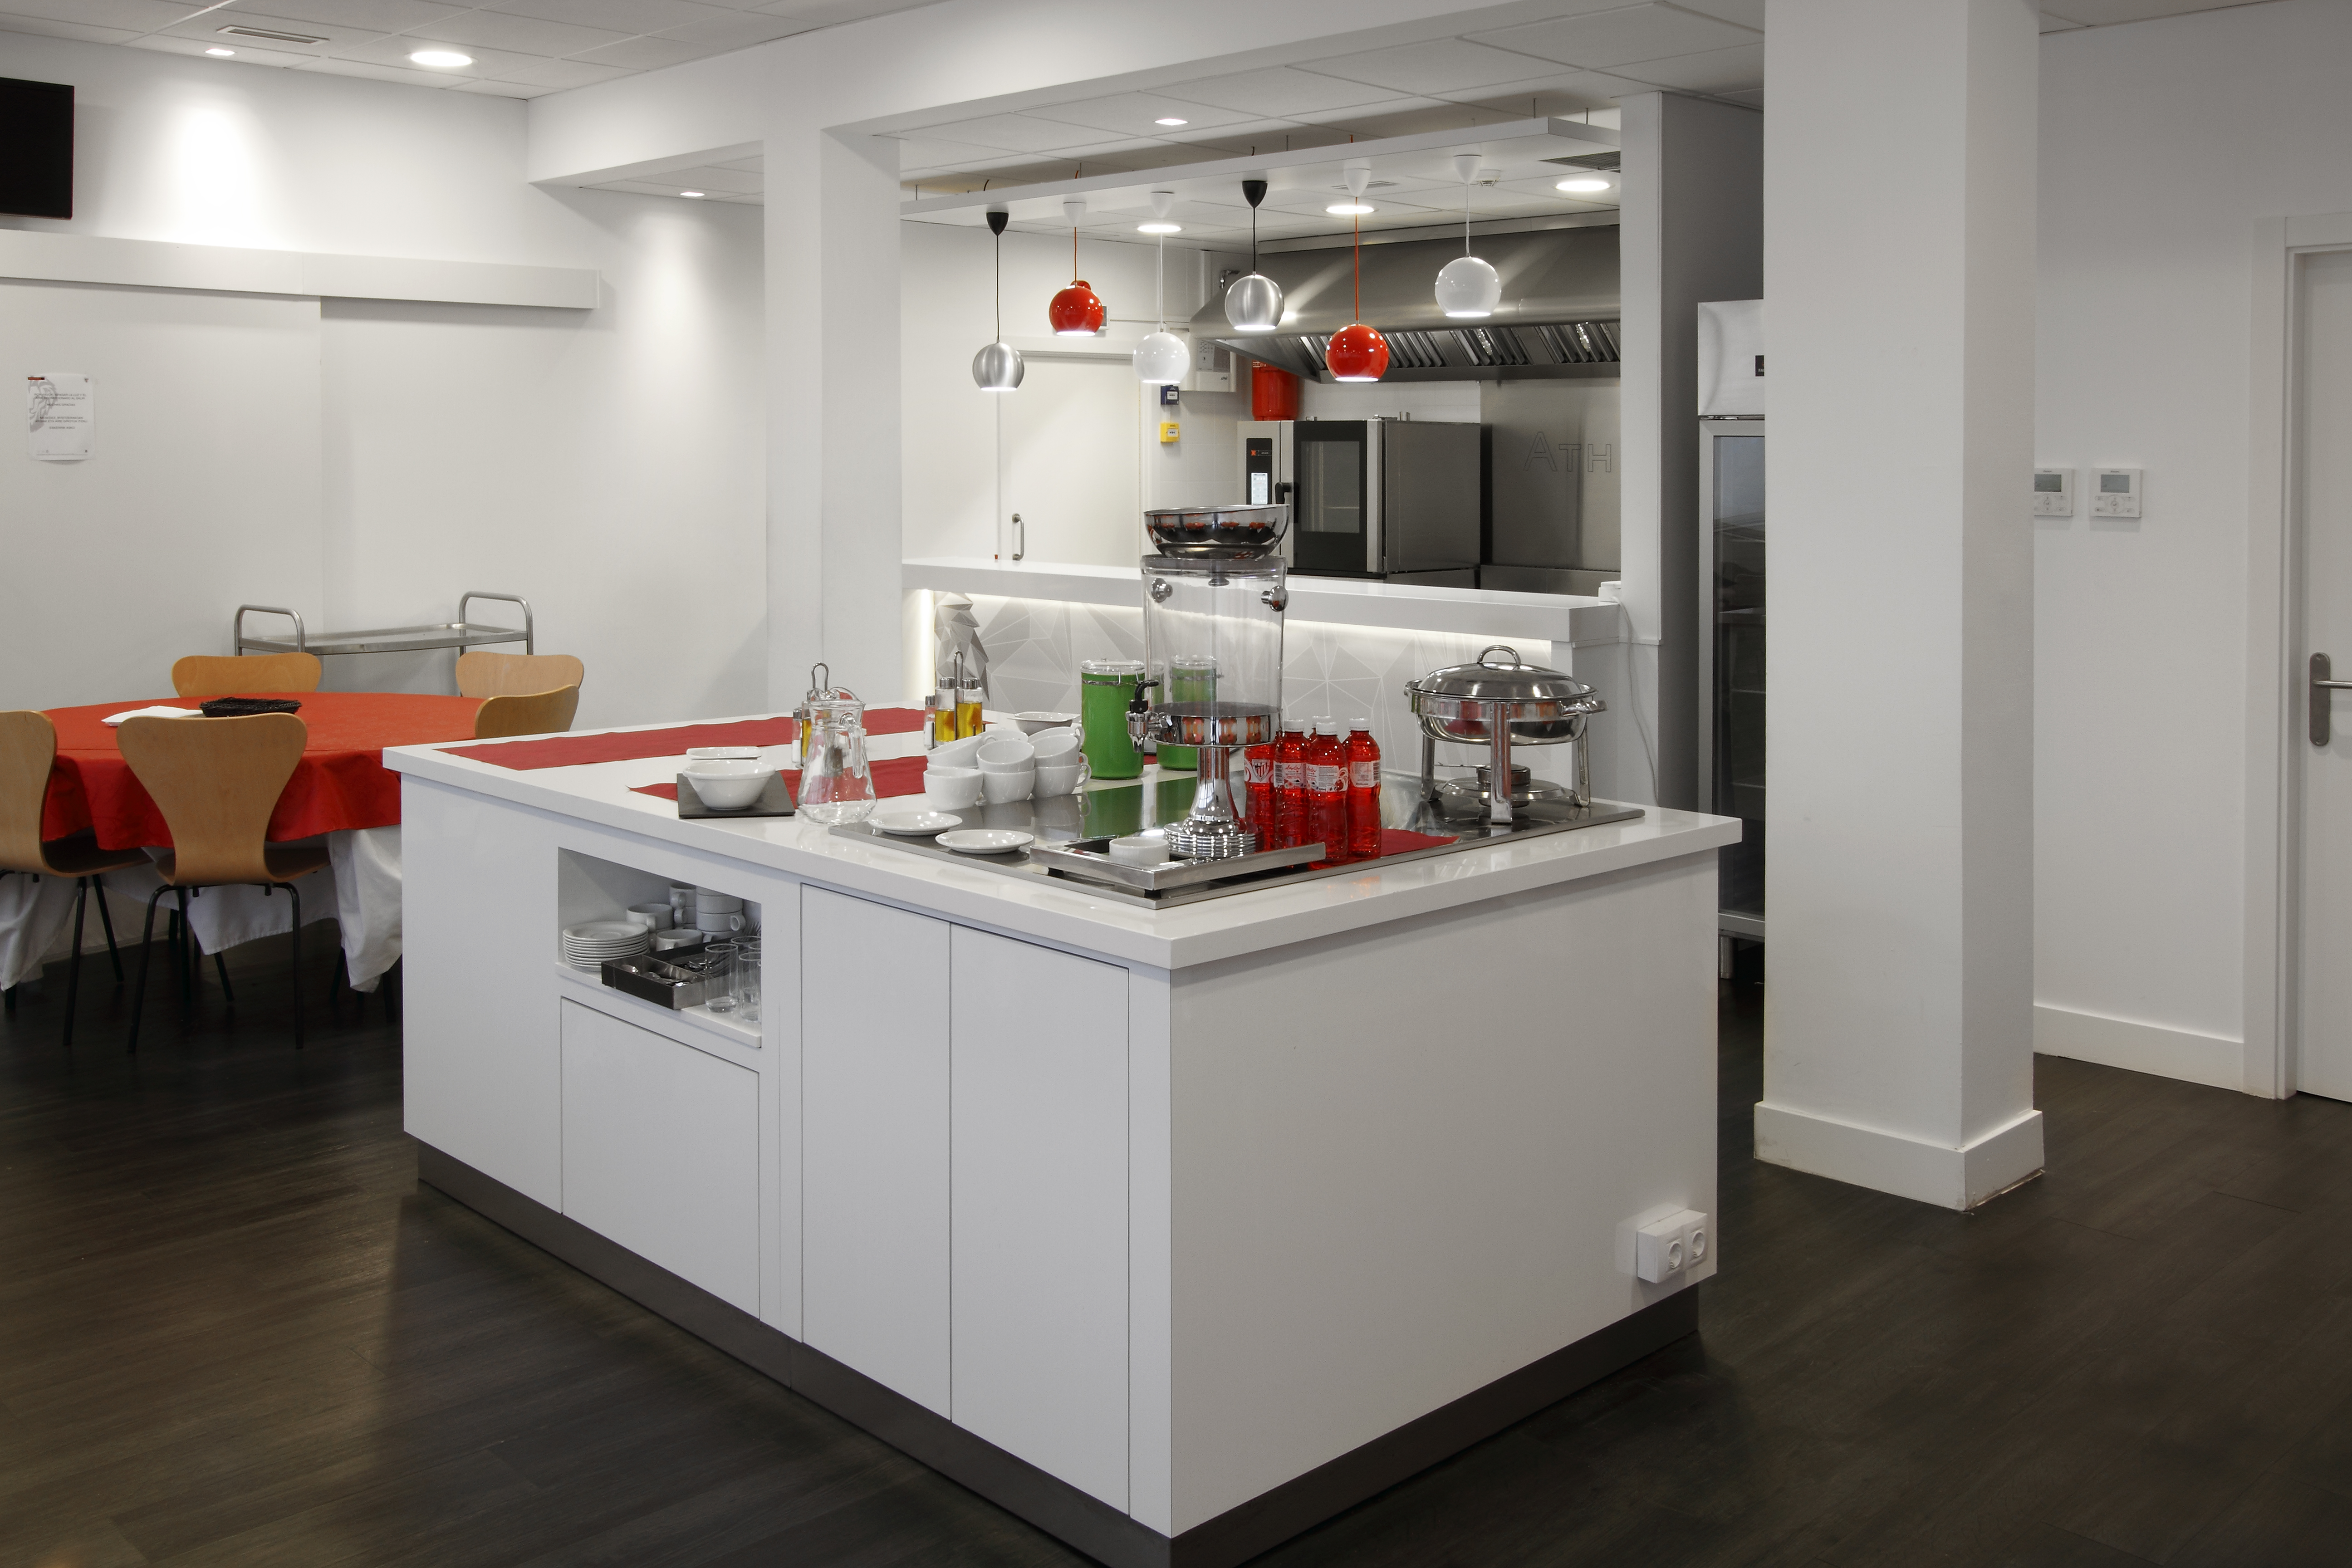 Fagor Industrial Fits Out The Champions League Kitchen Of